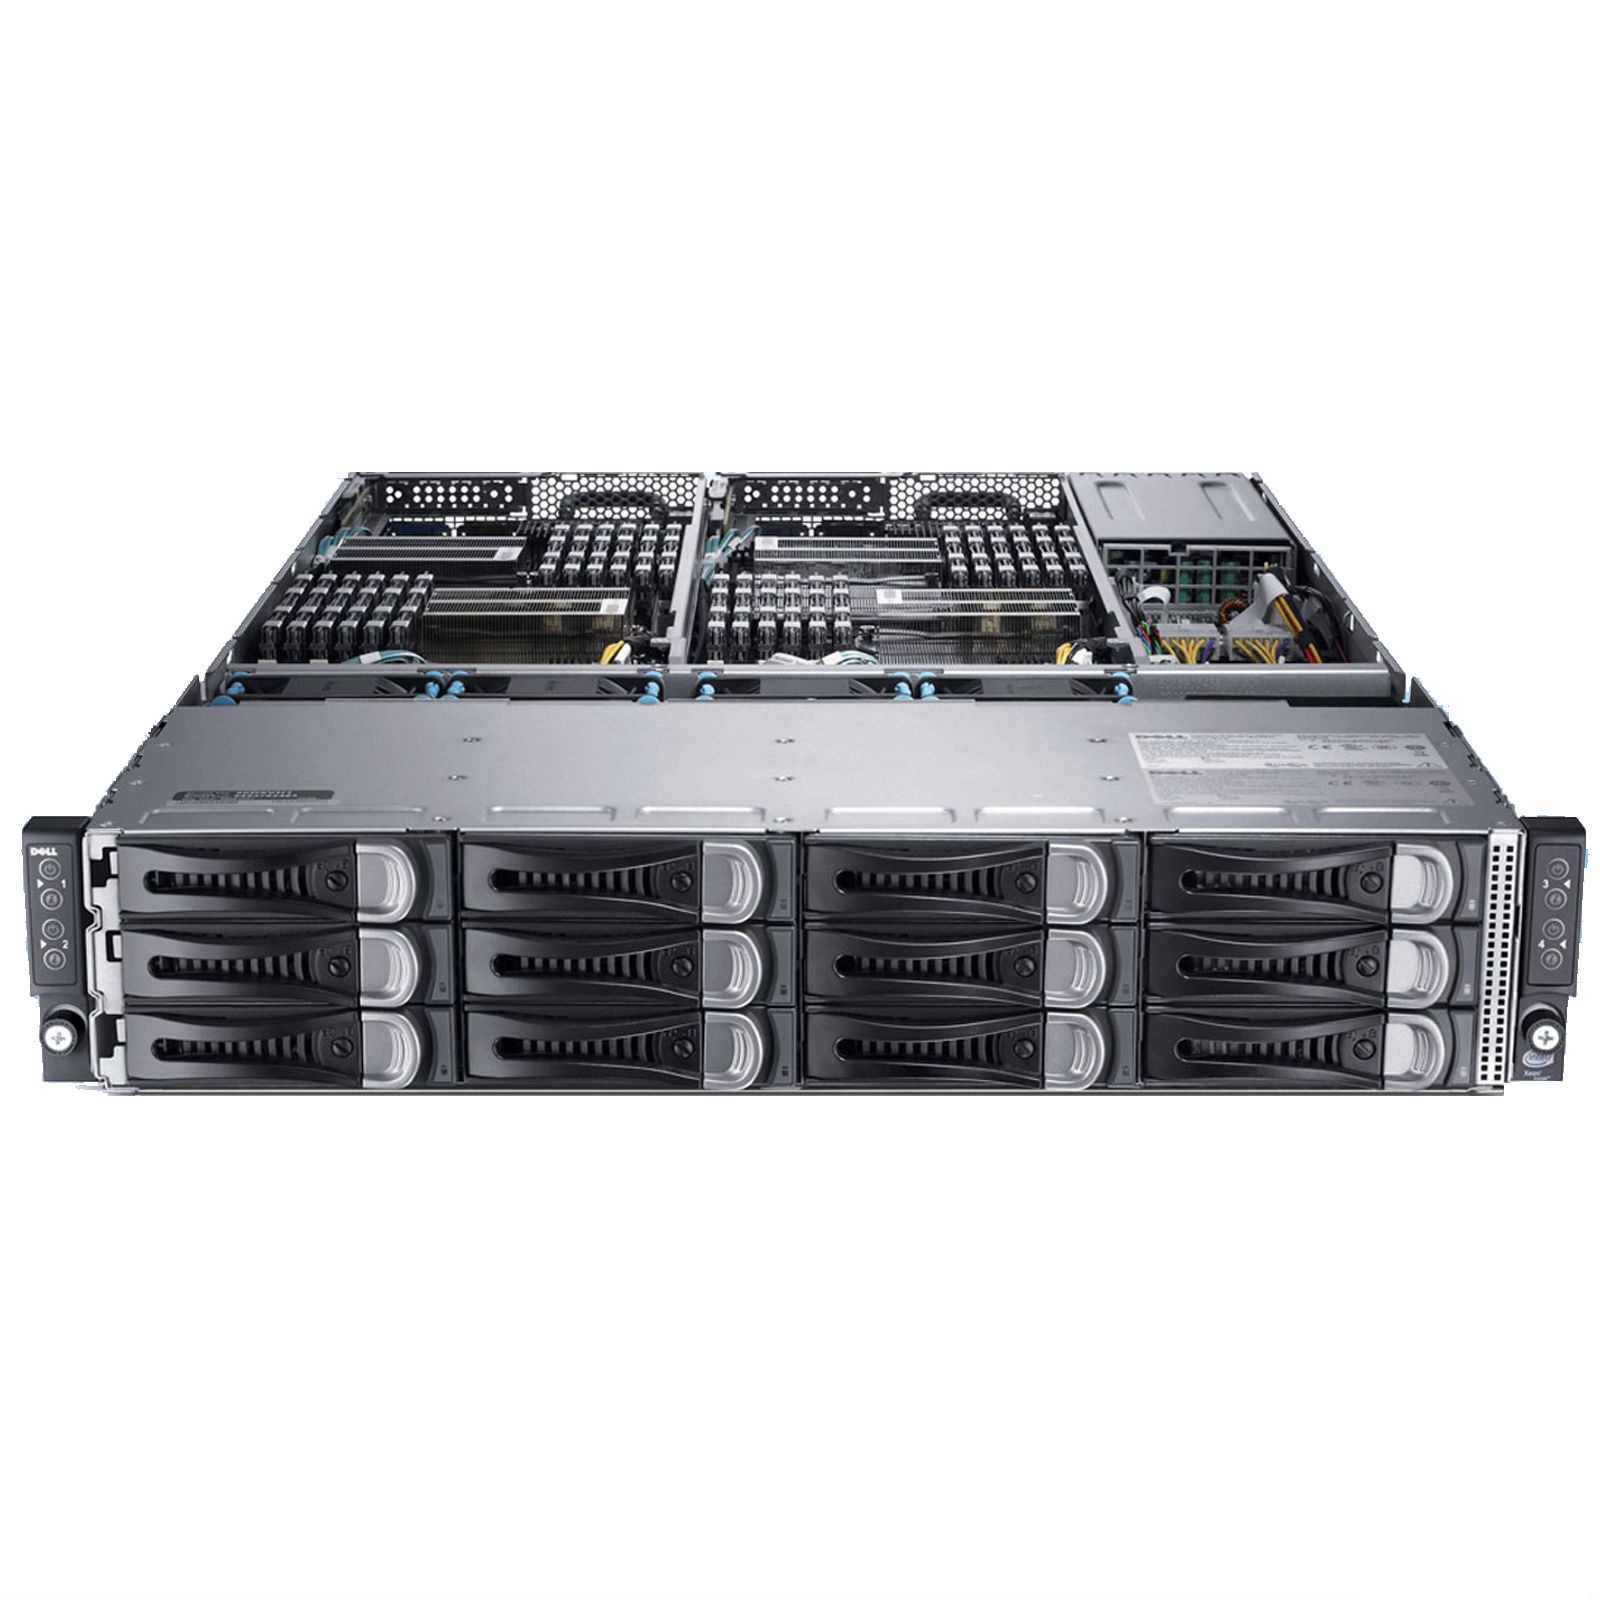 SERVER DELL POWEREDGE C6220 E5-2660 V2 (2.2Ghz - 25M Cache - 10 Core/ 20 Threads)